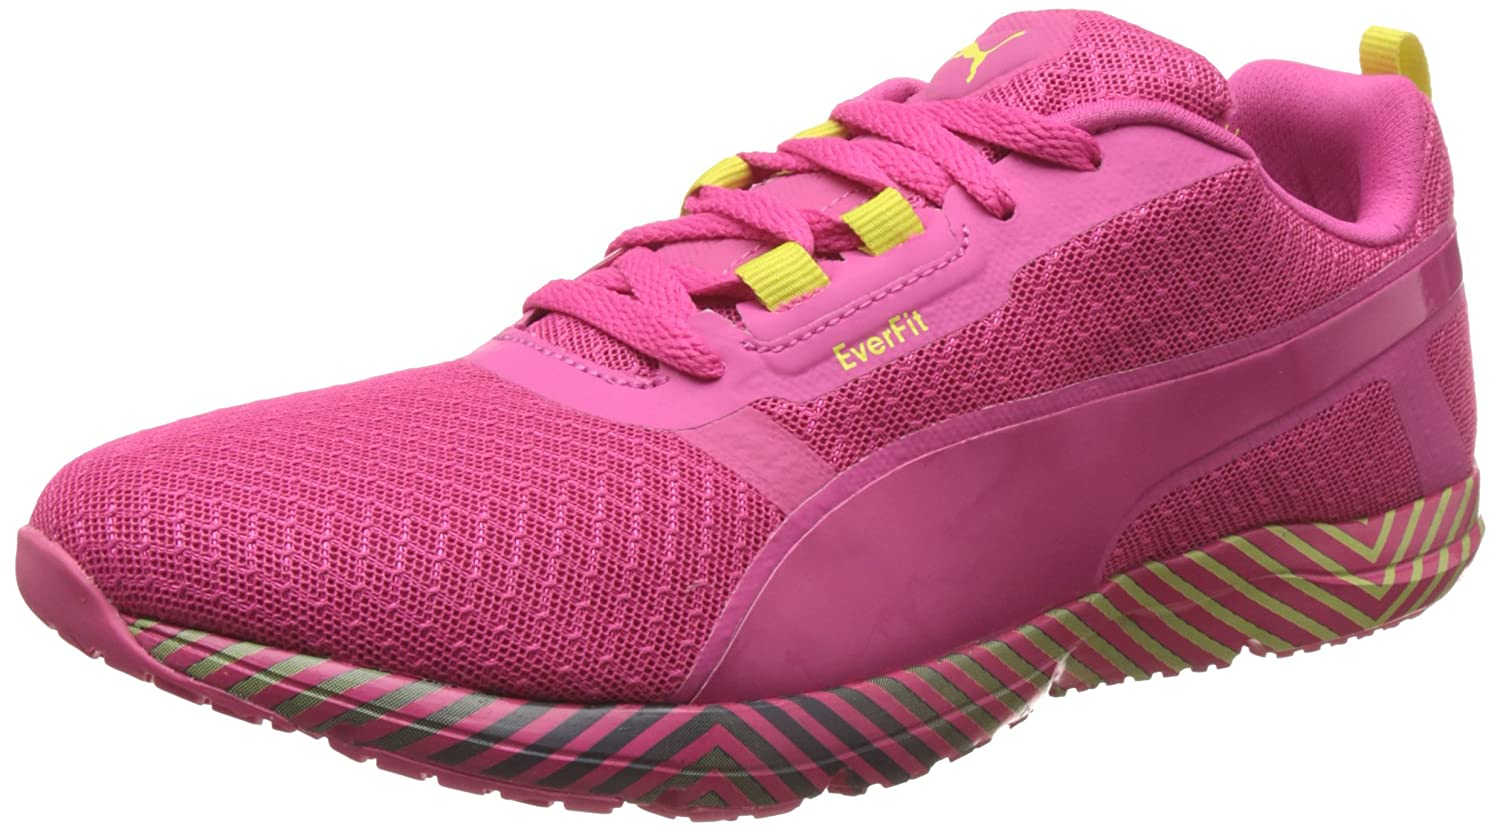 Damas Puma Zapatos Corrientes De La India n6NJHTQlWu